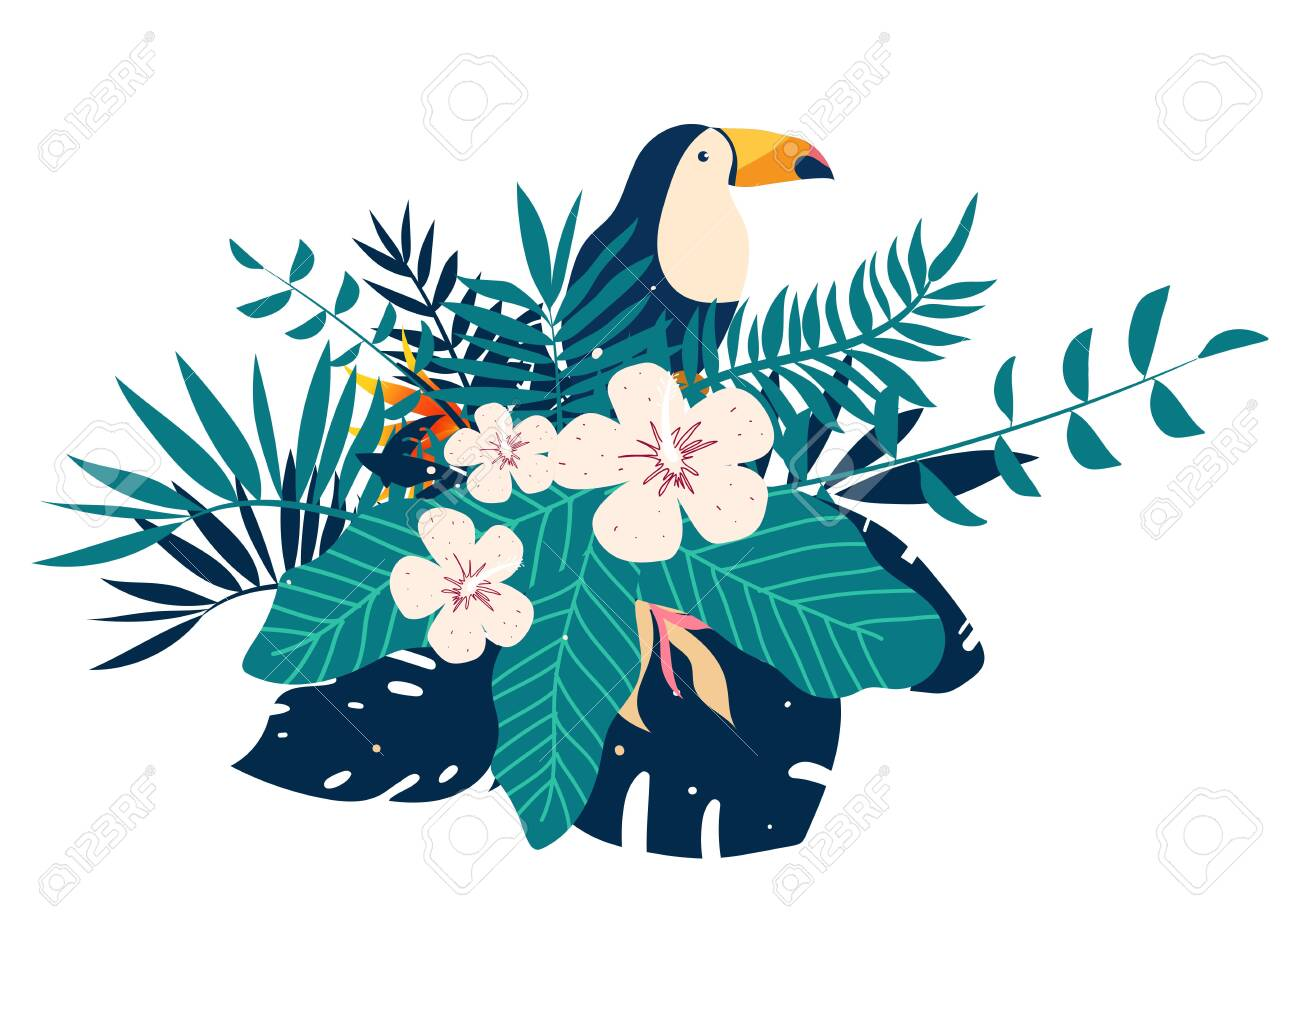 Toucan embroidery patches with tropical flowers and leaves, vector illustration - 124330723